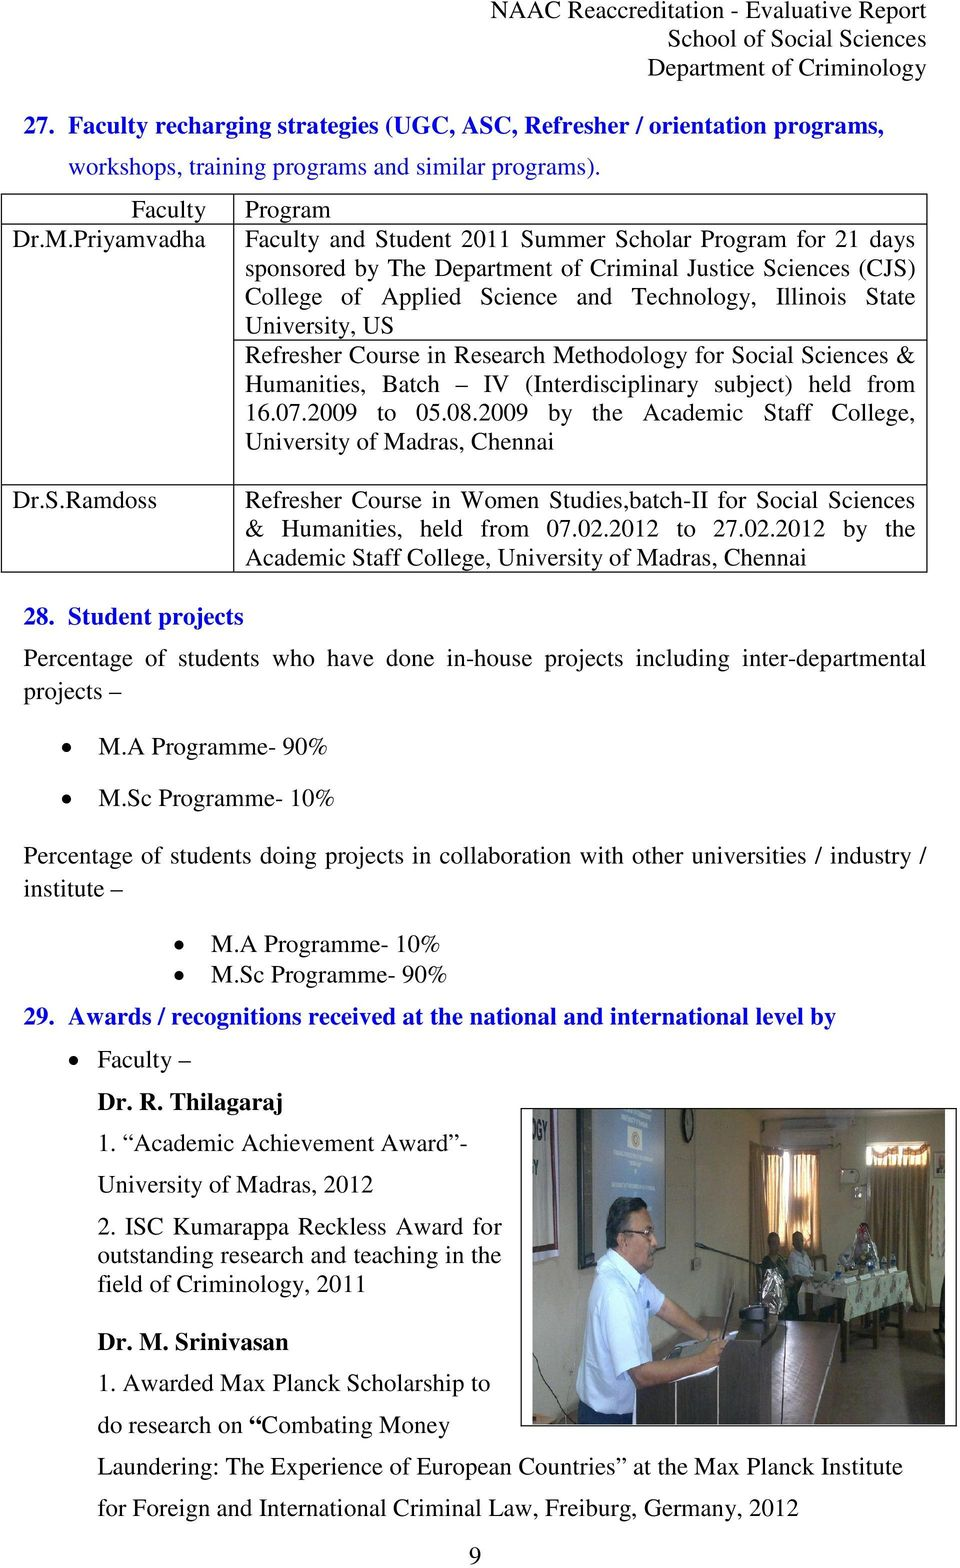 State University, US Refresher Course in Research Methodology for Social Sciences & Humanities, Batch IV (Interdisciplinary subject) held from 16.07.2009 to 05.08.